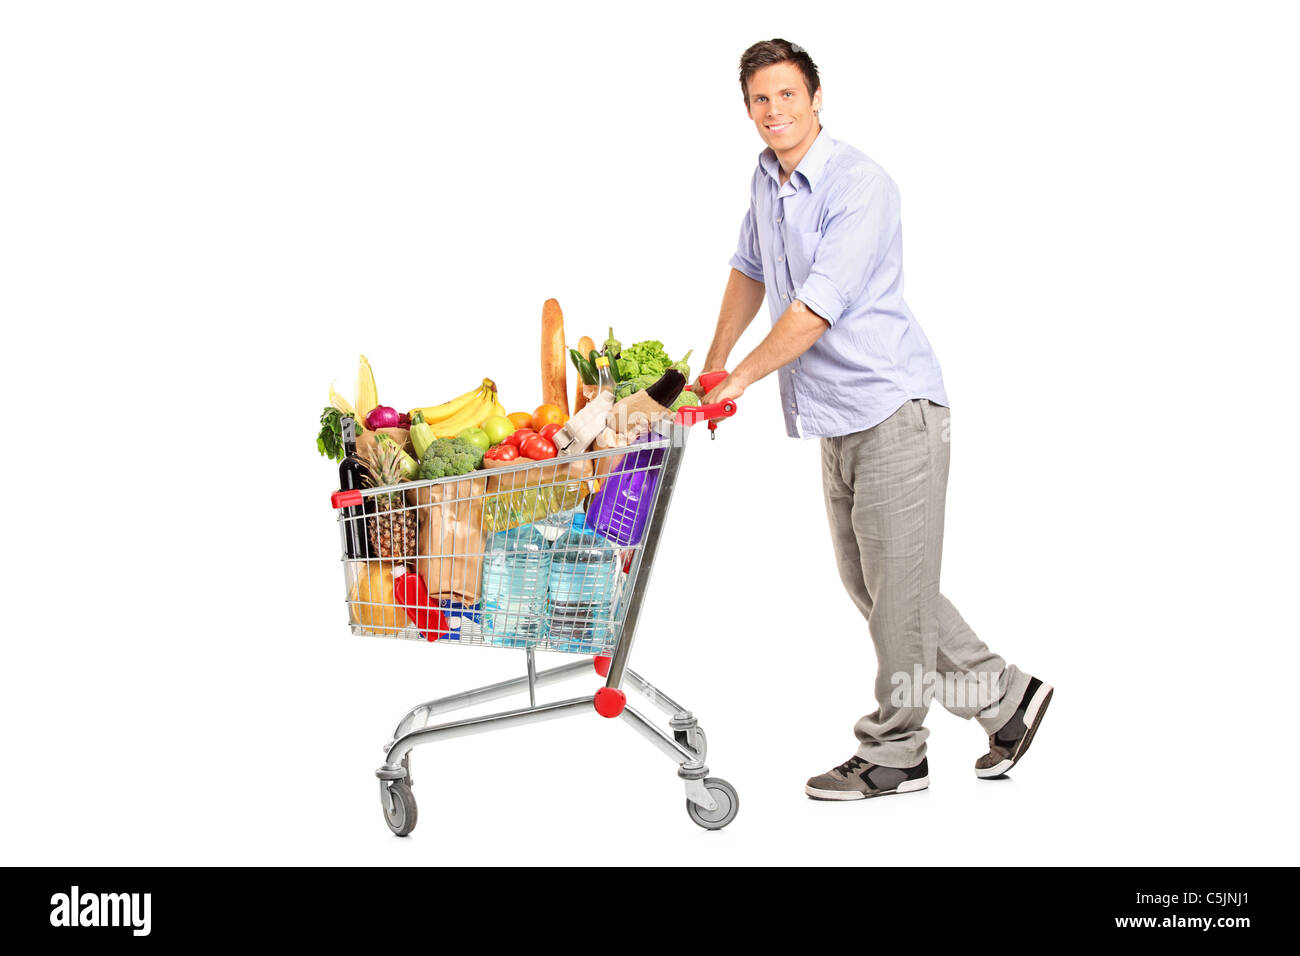 A young male pushing a shopping cart full with groceries - Stock Image